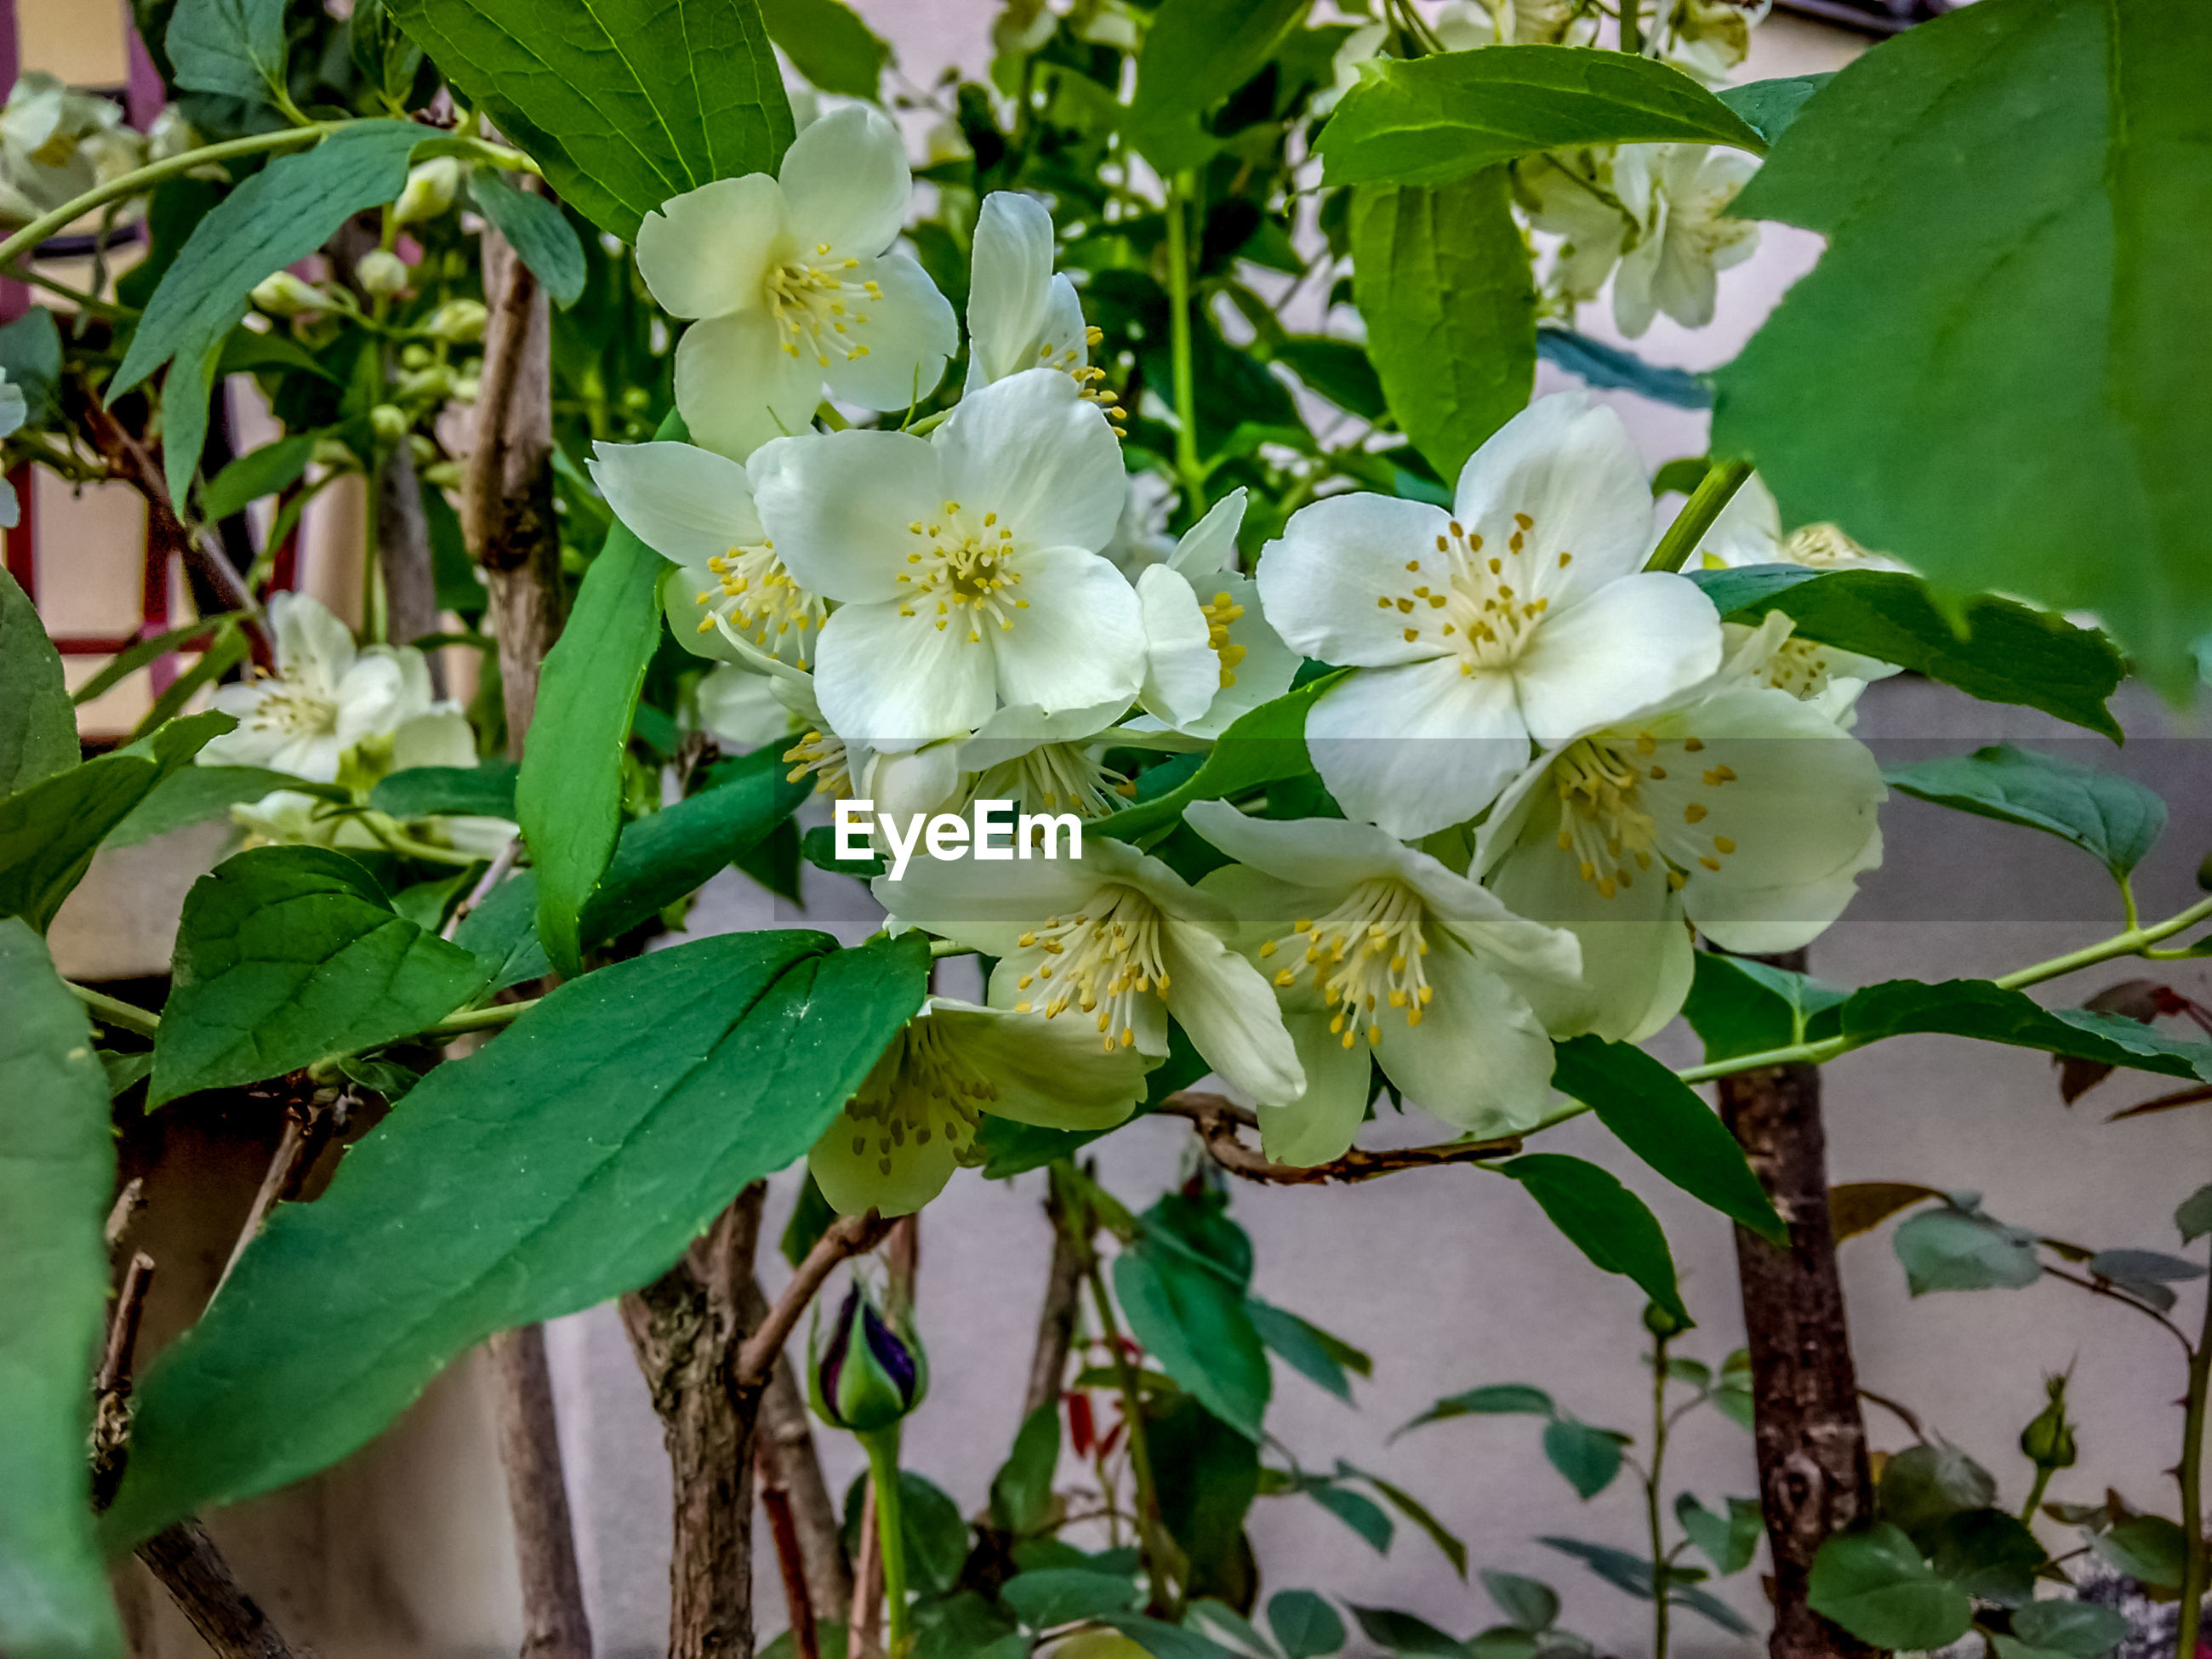 flower, growth, nature, beauty in nature, fragility, white color, plant, petal, leaf, freshness, no people, blossom, blooming, green color, flower head, tree, outdoors, day, branch, close-up